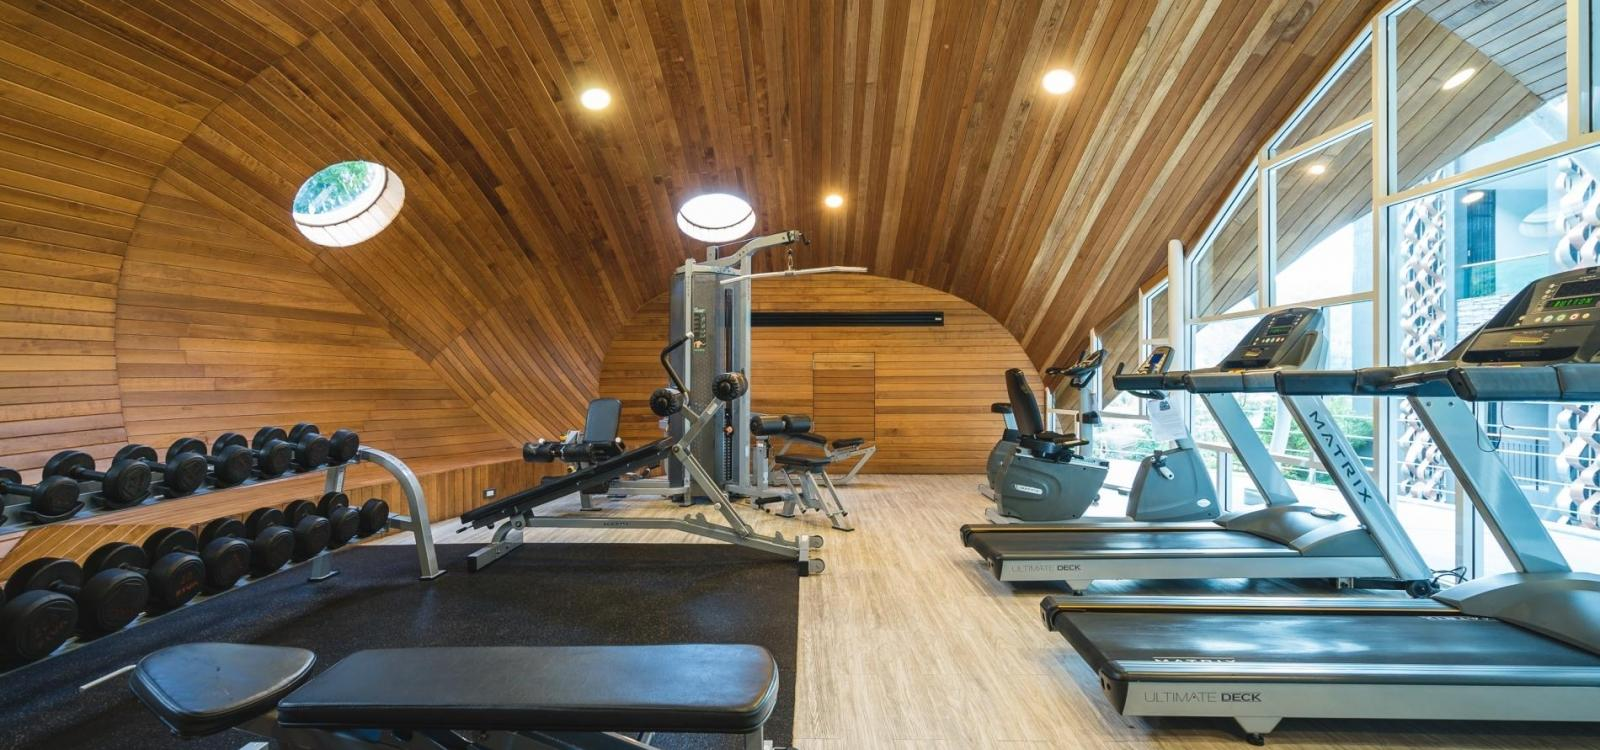 ET308 - Studio in Emerald Terrace condo, with pool and gym!